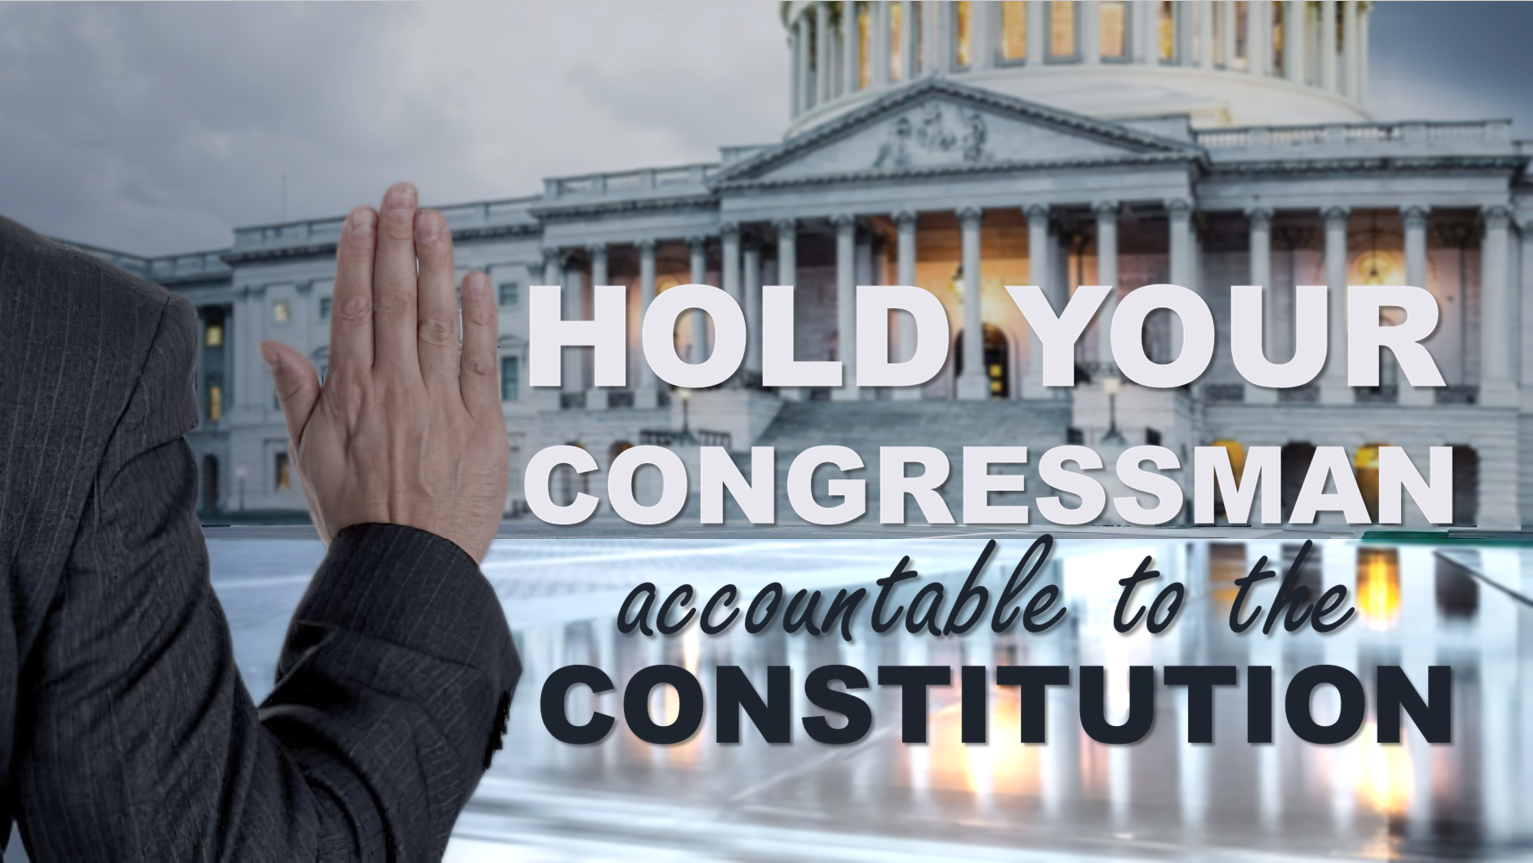 Hold Your Congressmen Accountable to the Constitution!